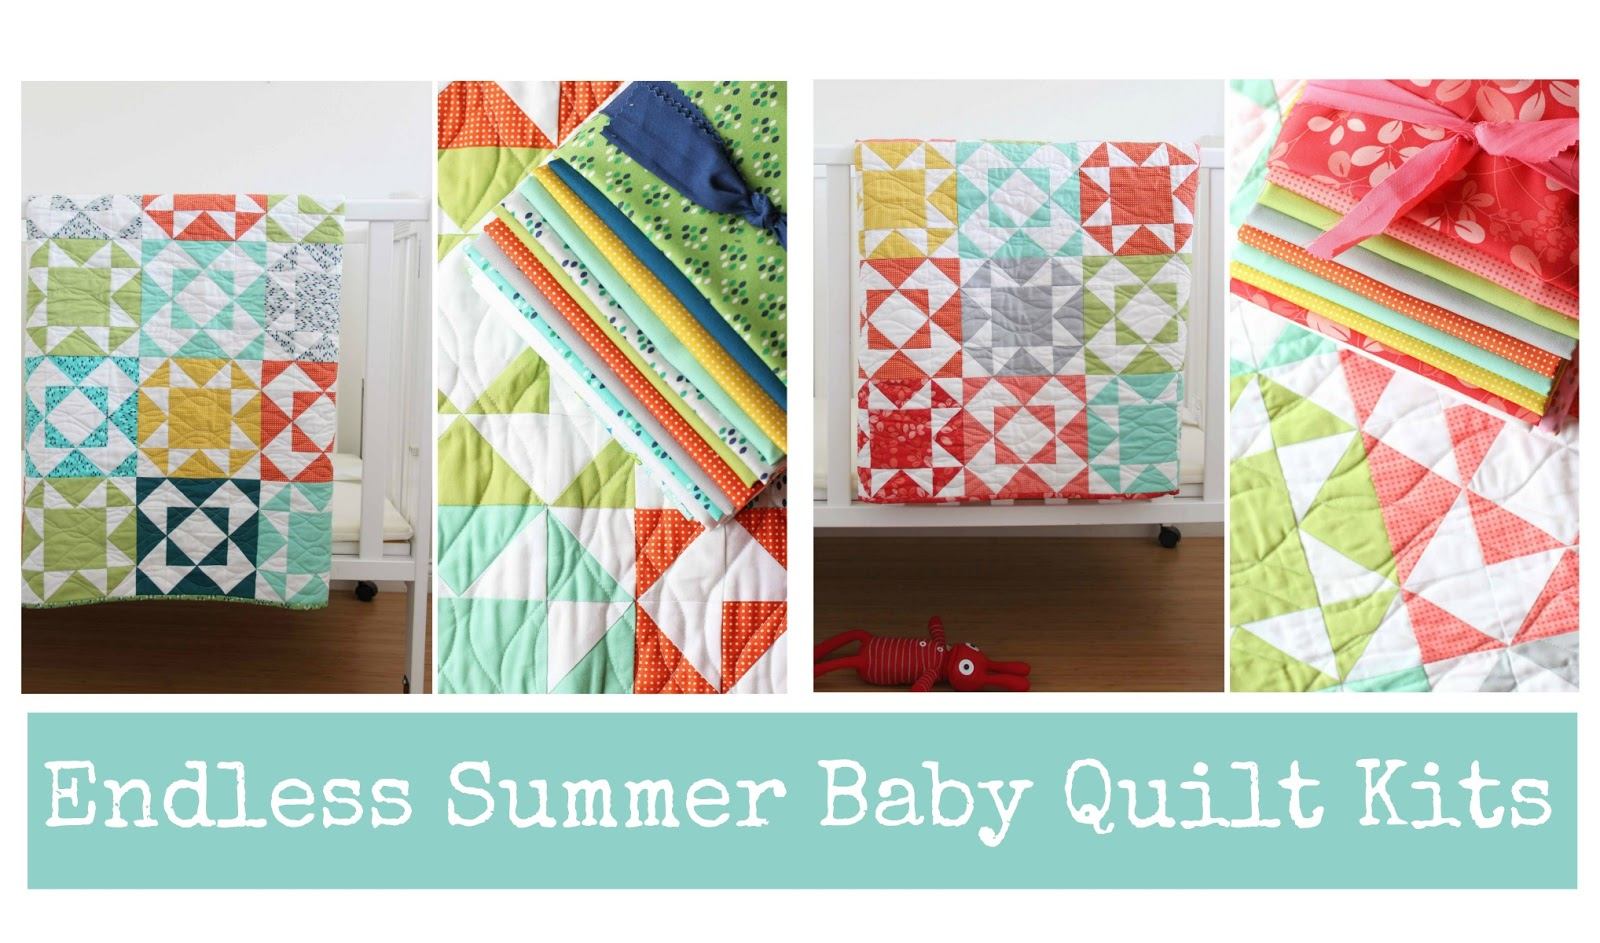 V and Co.: Endless Summer Baby Quilt Kits : kits for baby quilts - Adamdwight.com